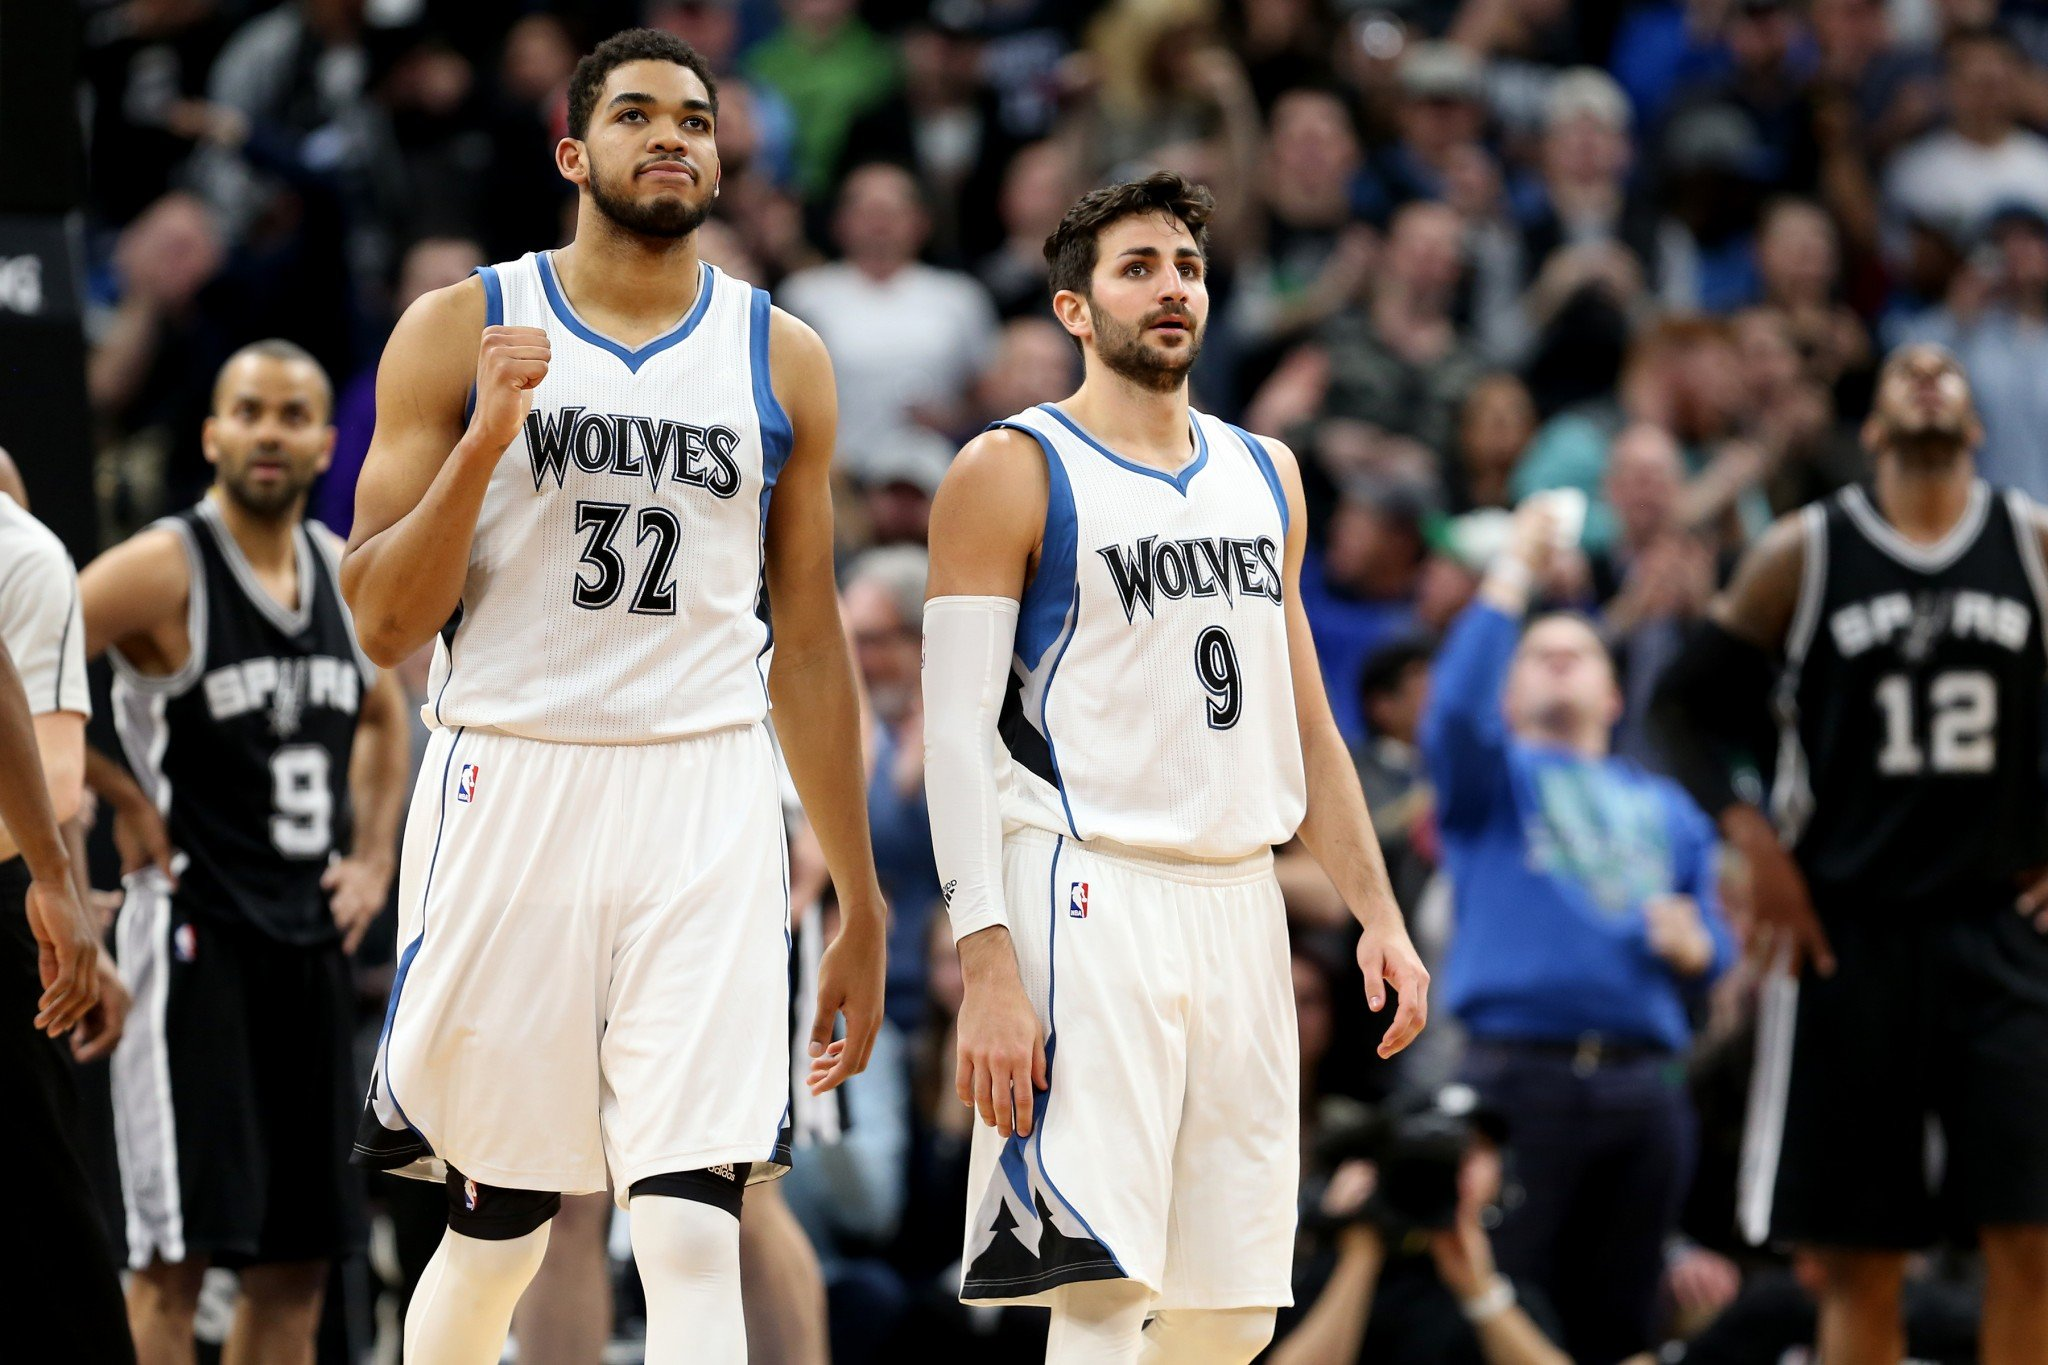 Karl-Anthony Towns and Ricky Rubio have helped lead the Timberwolves' second-half surge. (Getty Images)